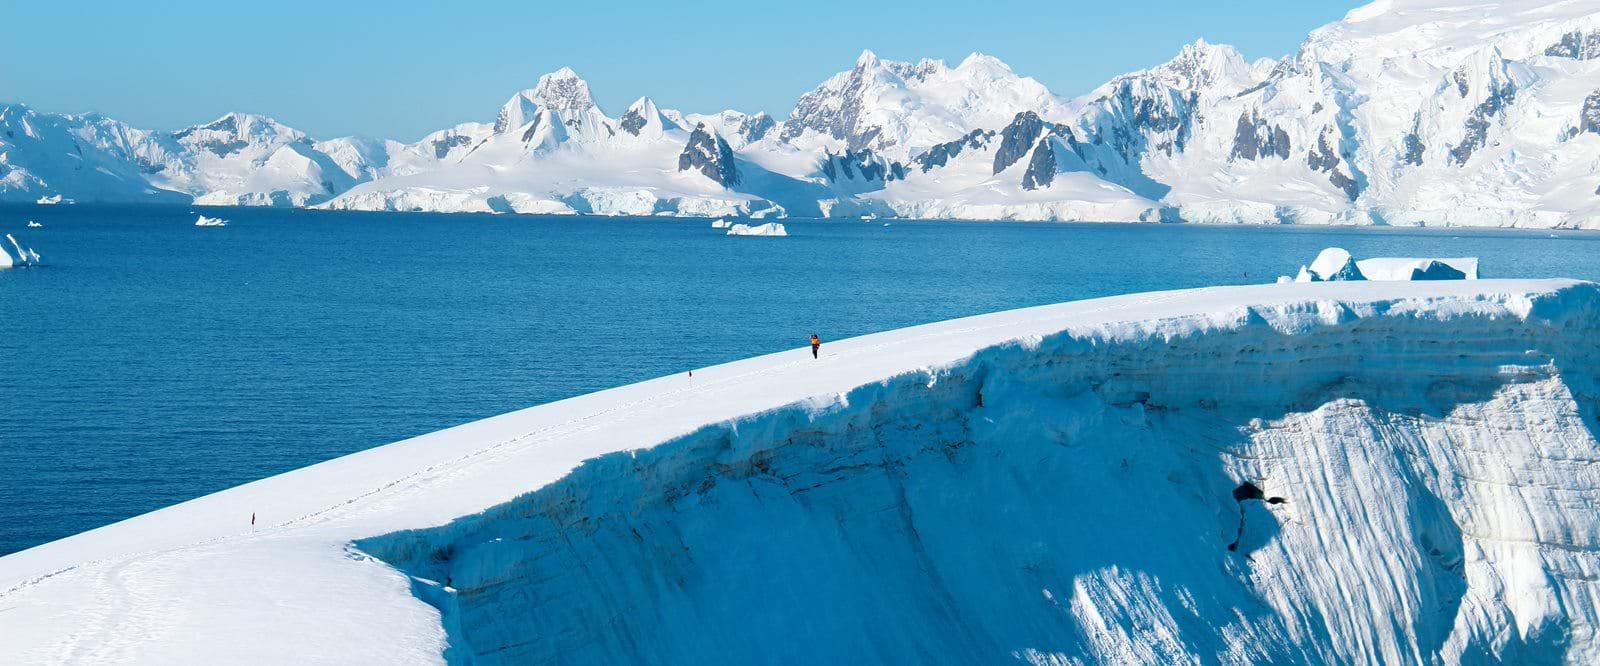 Travel to antartica with polarquest for Best trips to antarctica